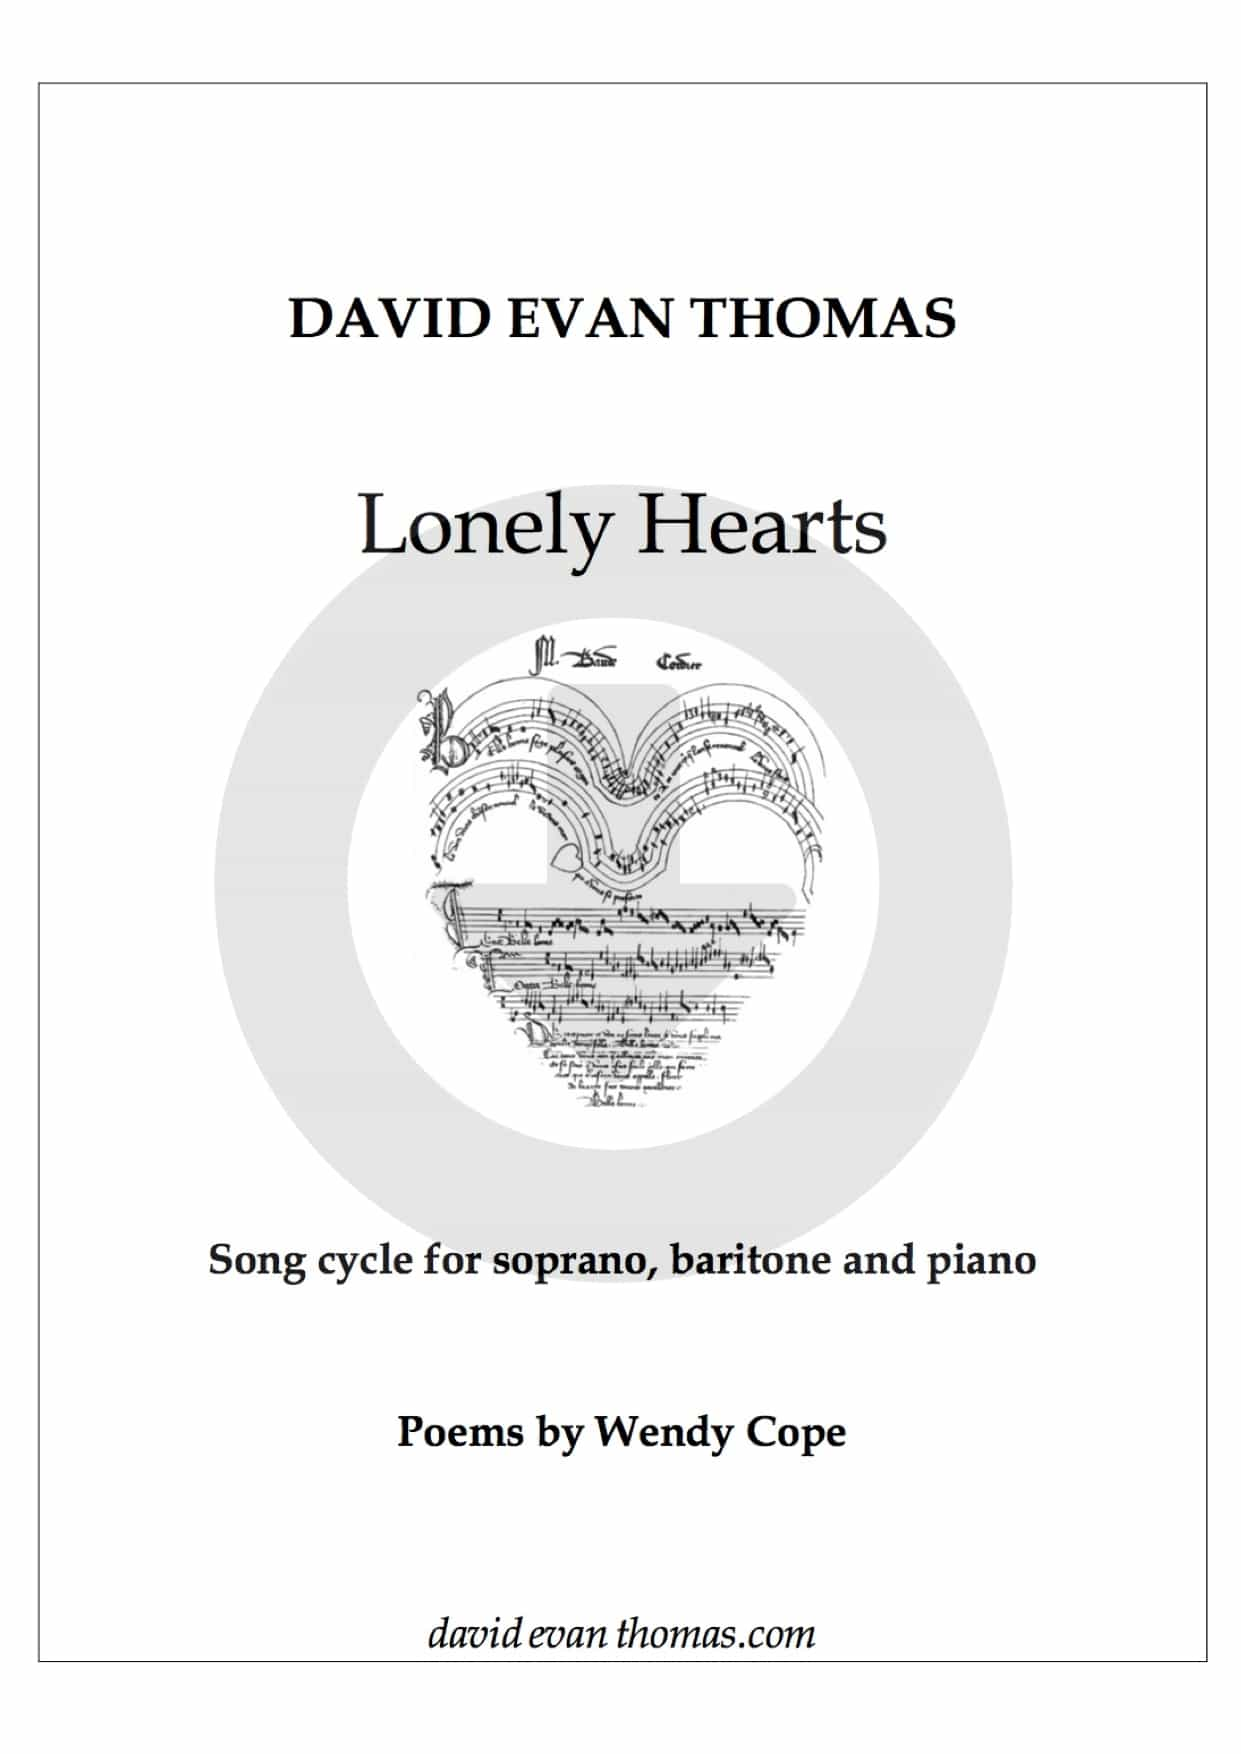 Lonely Hearts duo song cycle PDF for download